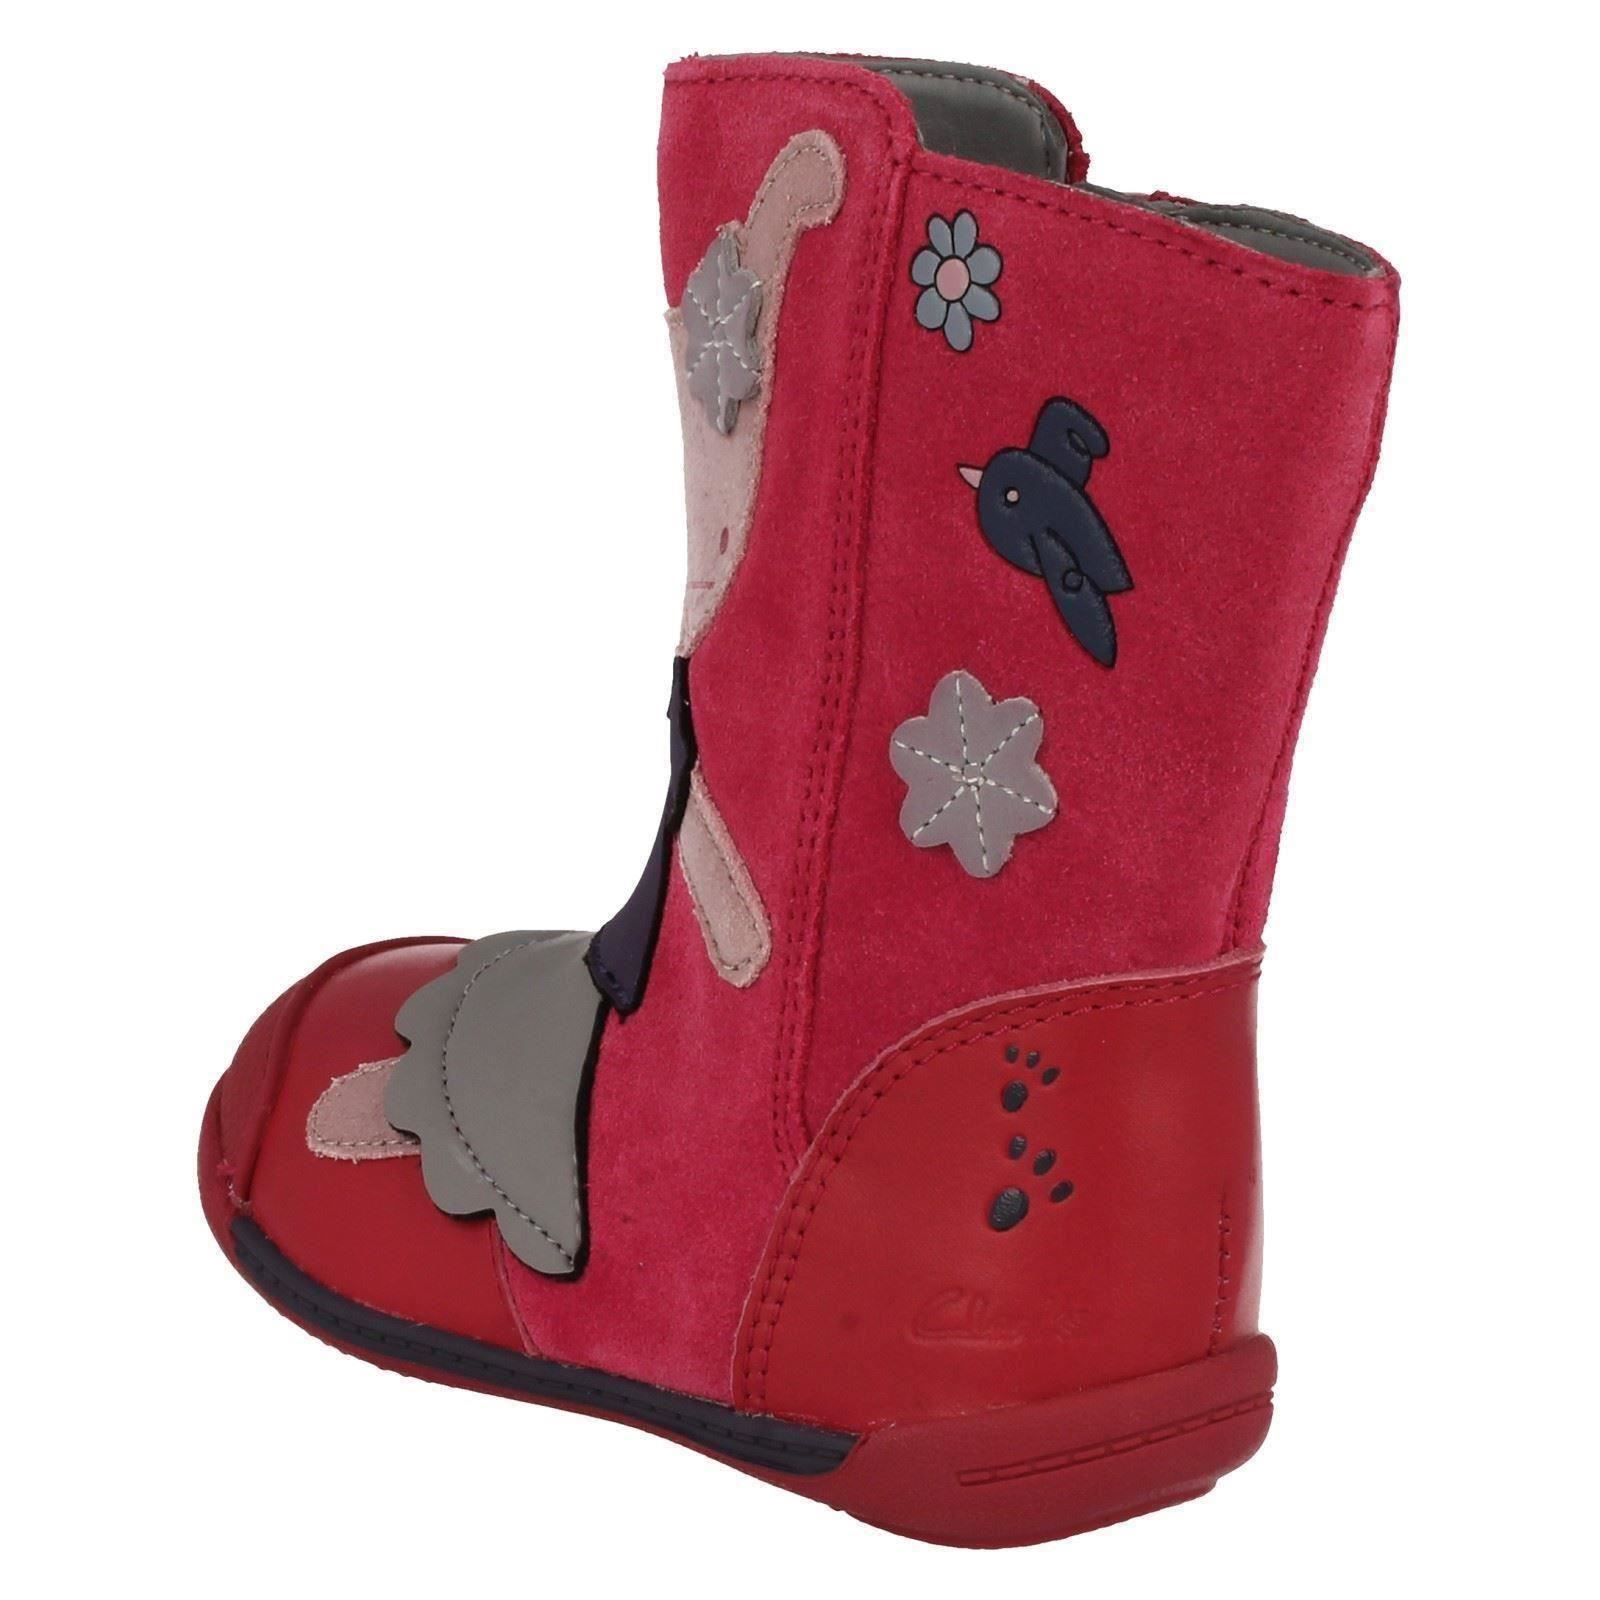 Girls Clarks Boots with Rabbit Design /'Iva Friend/'